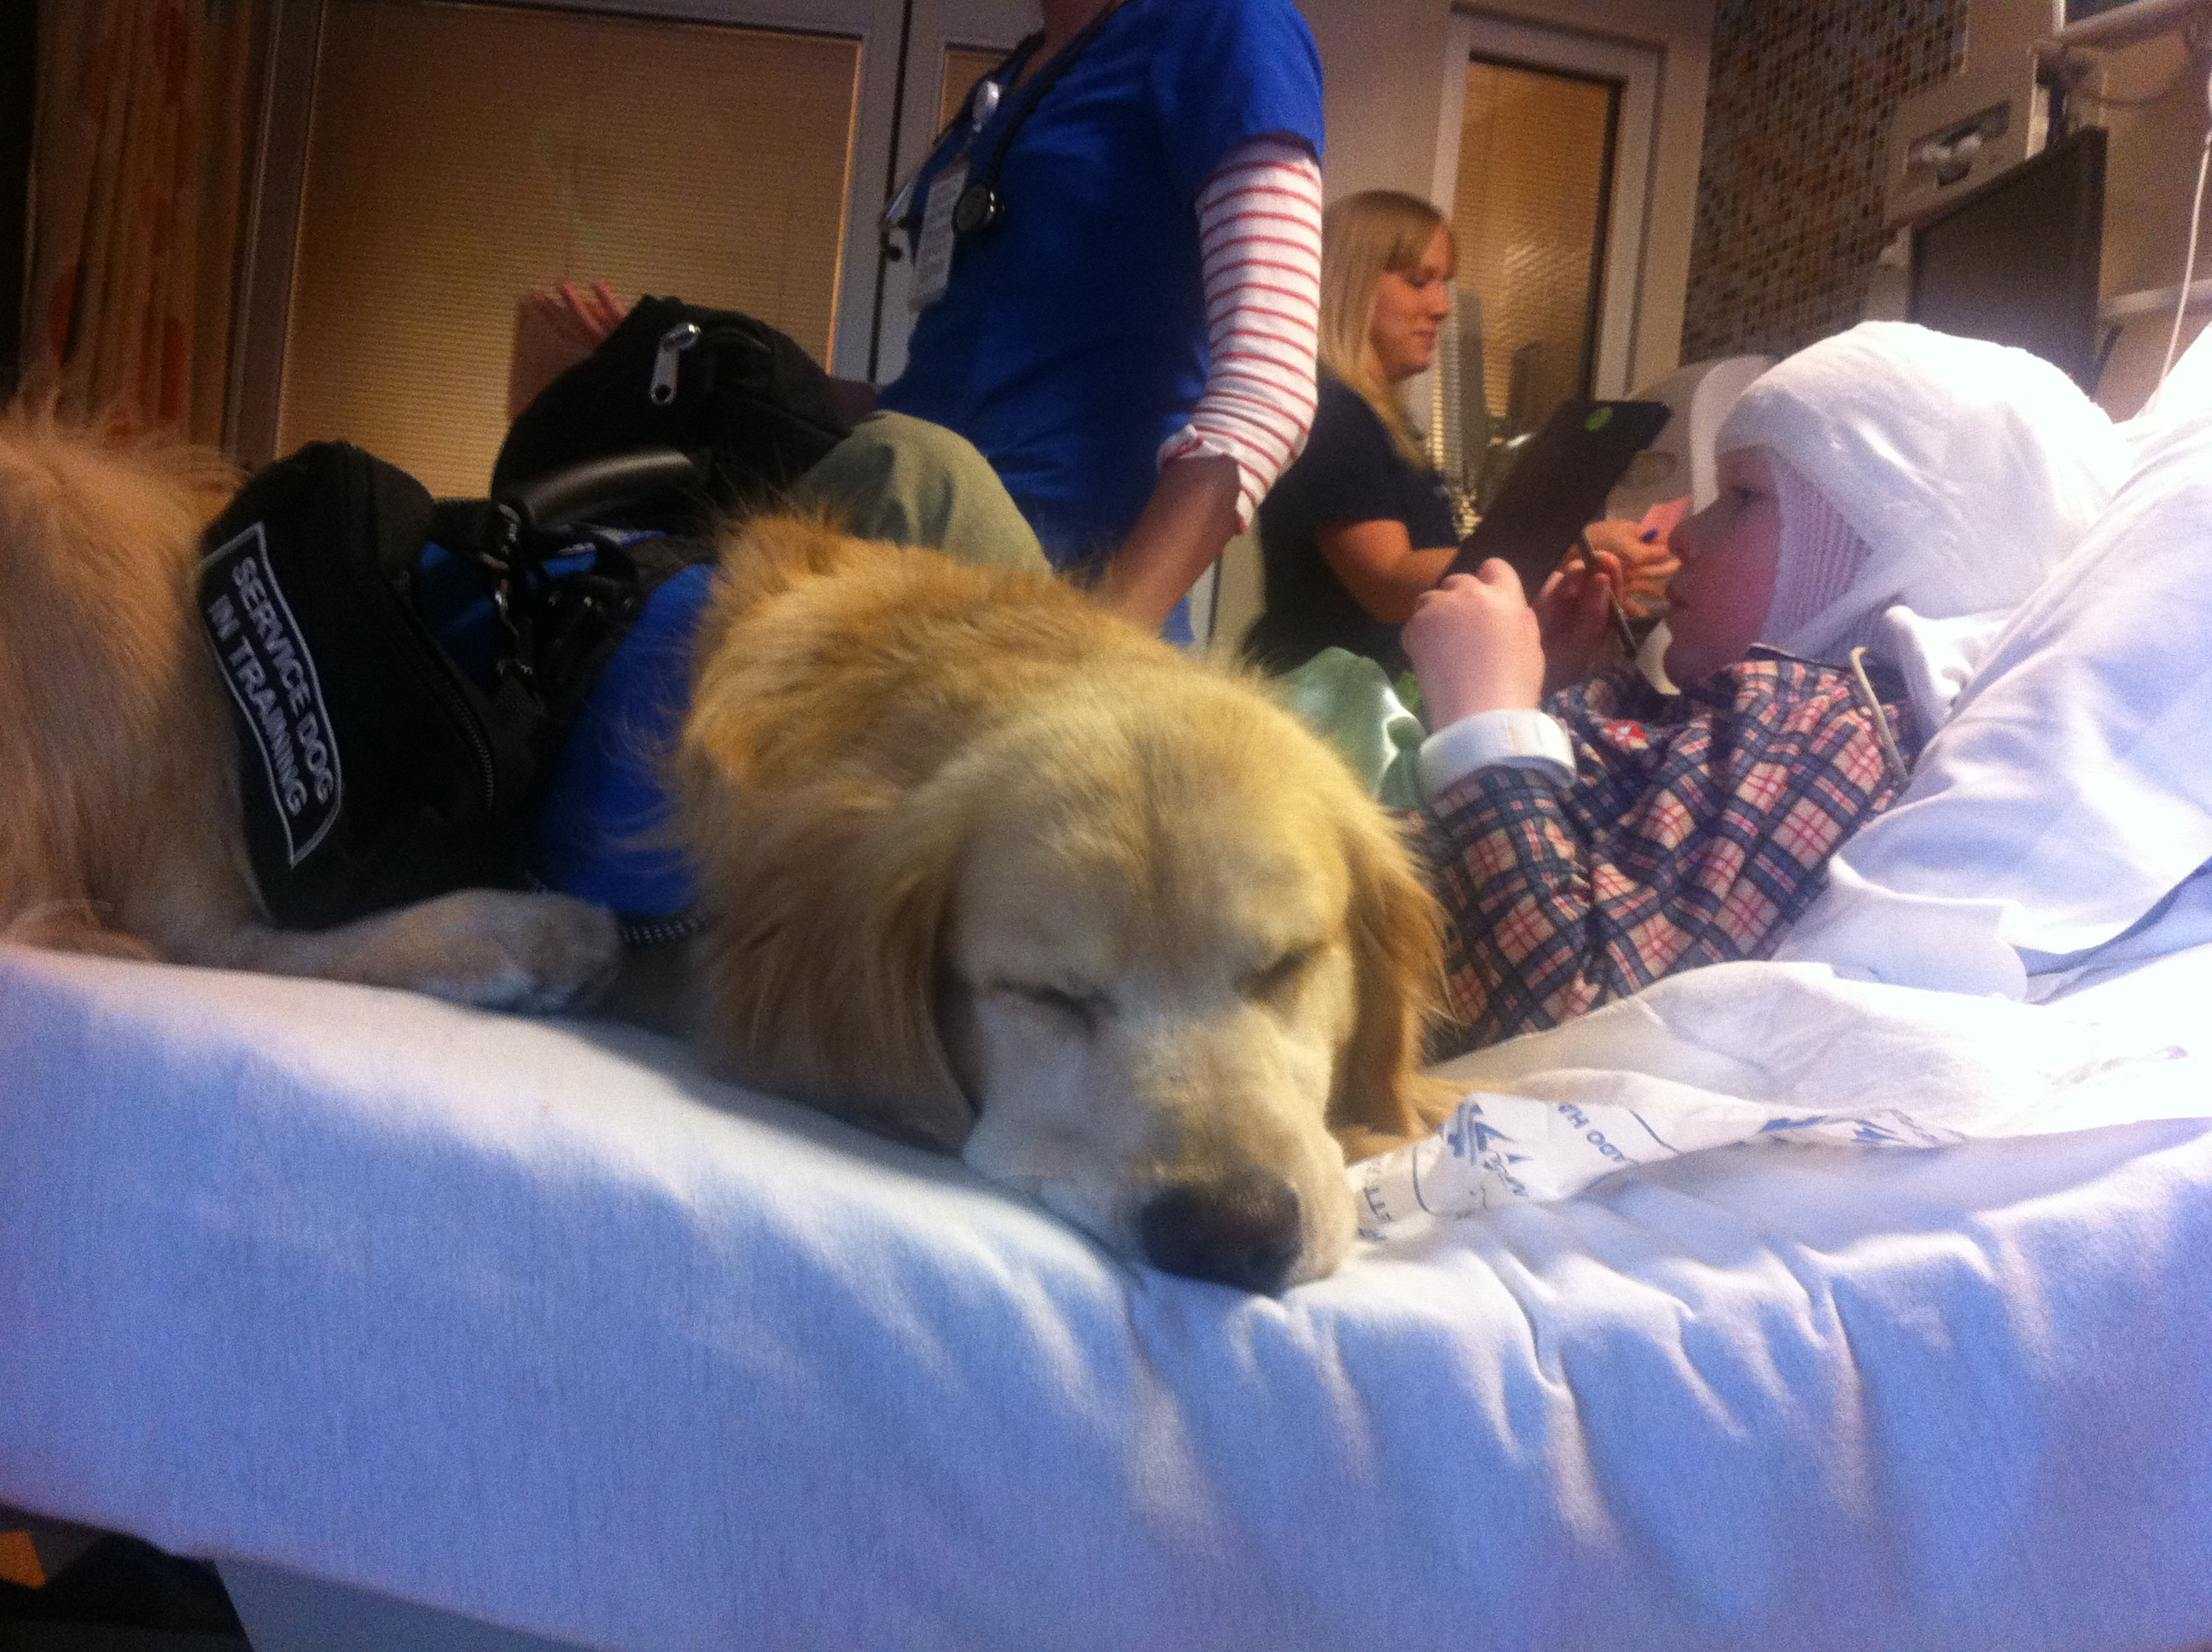 File:Service Dog in hospital bed jpg - Wikimedia Commons